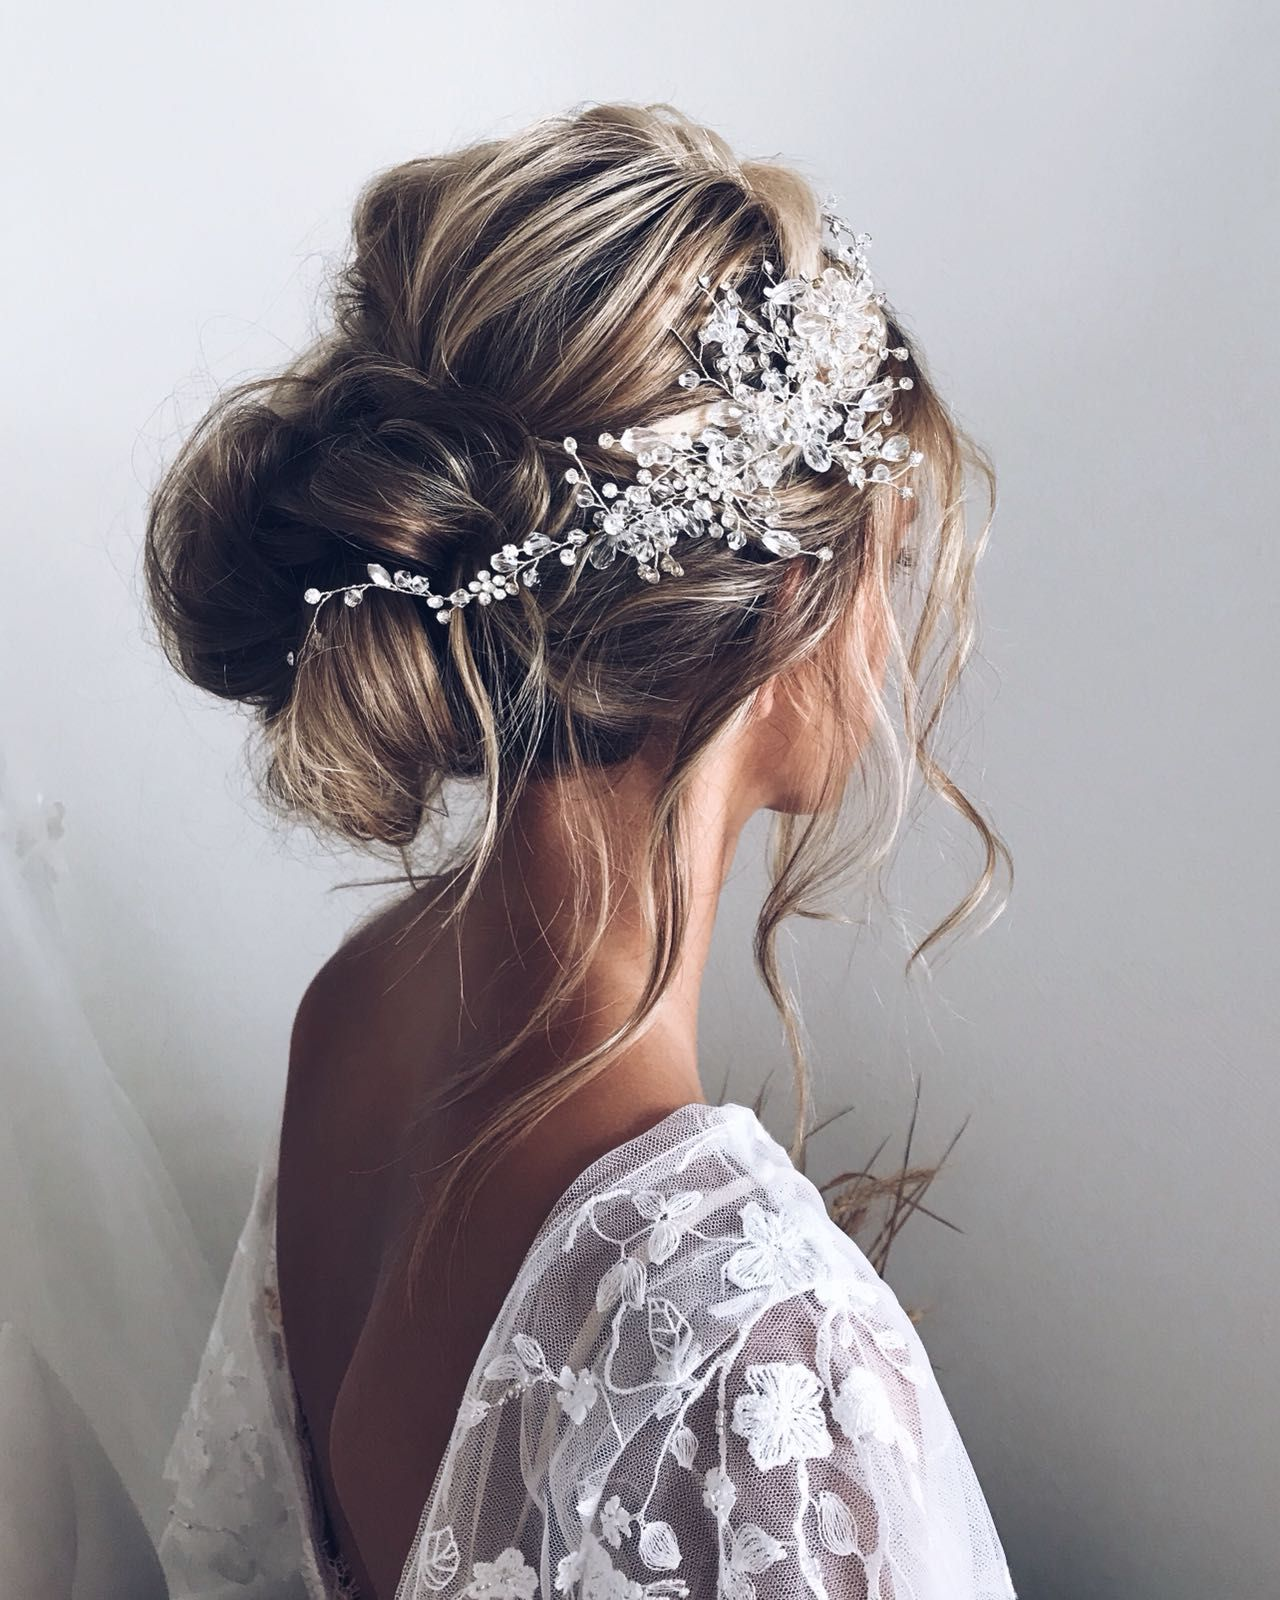 hair by ulyana aster #weddinghair #hairstyle #bridalhair